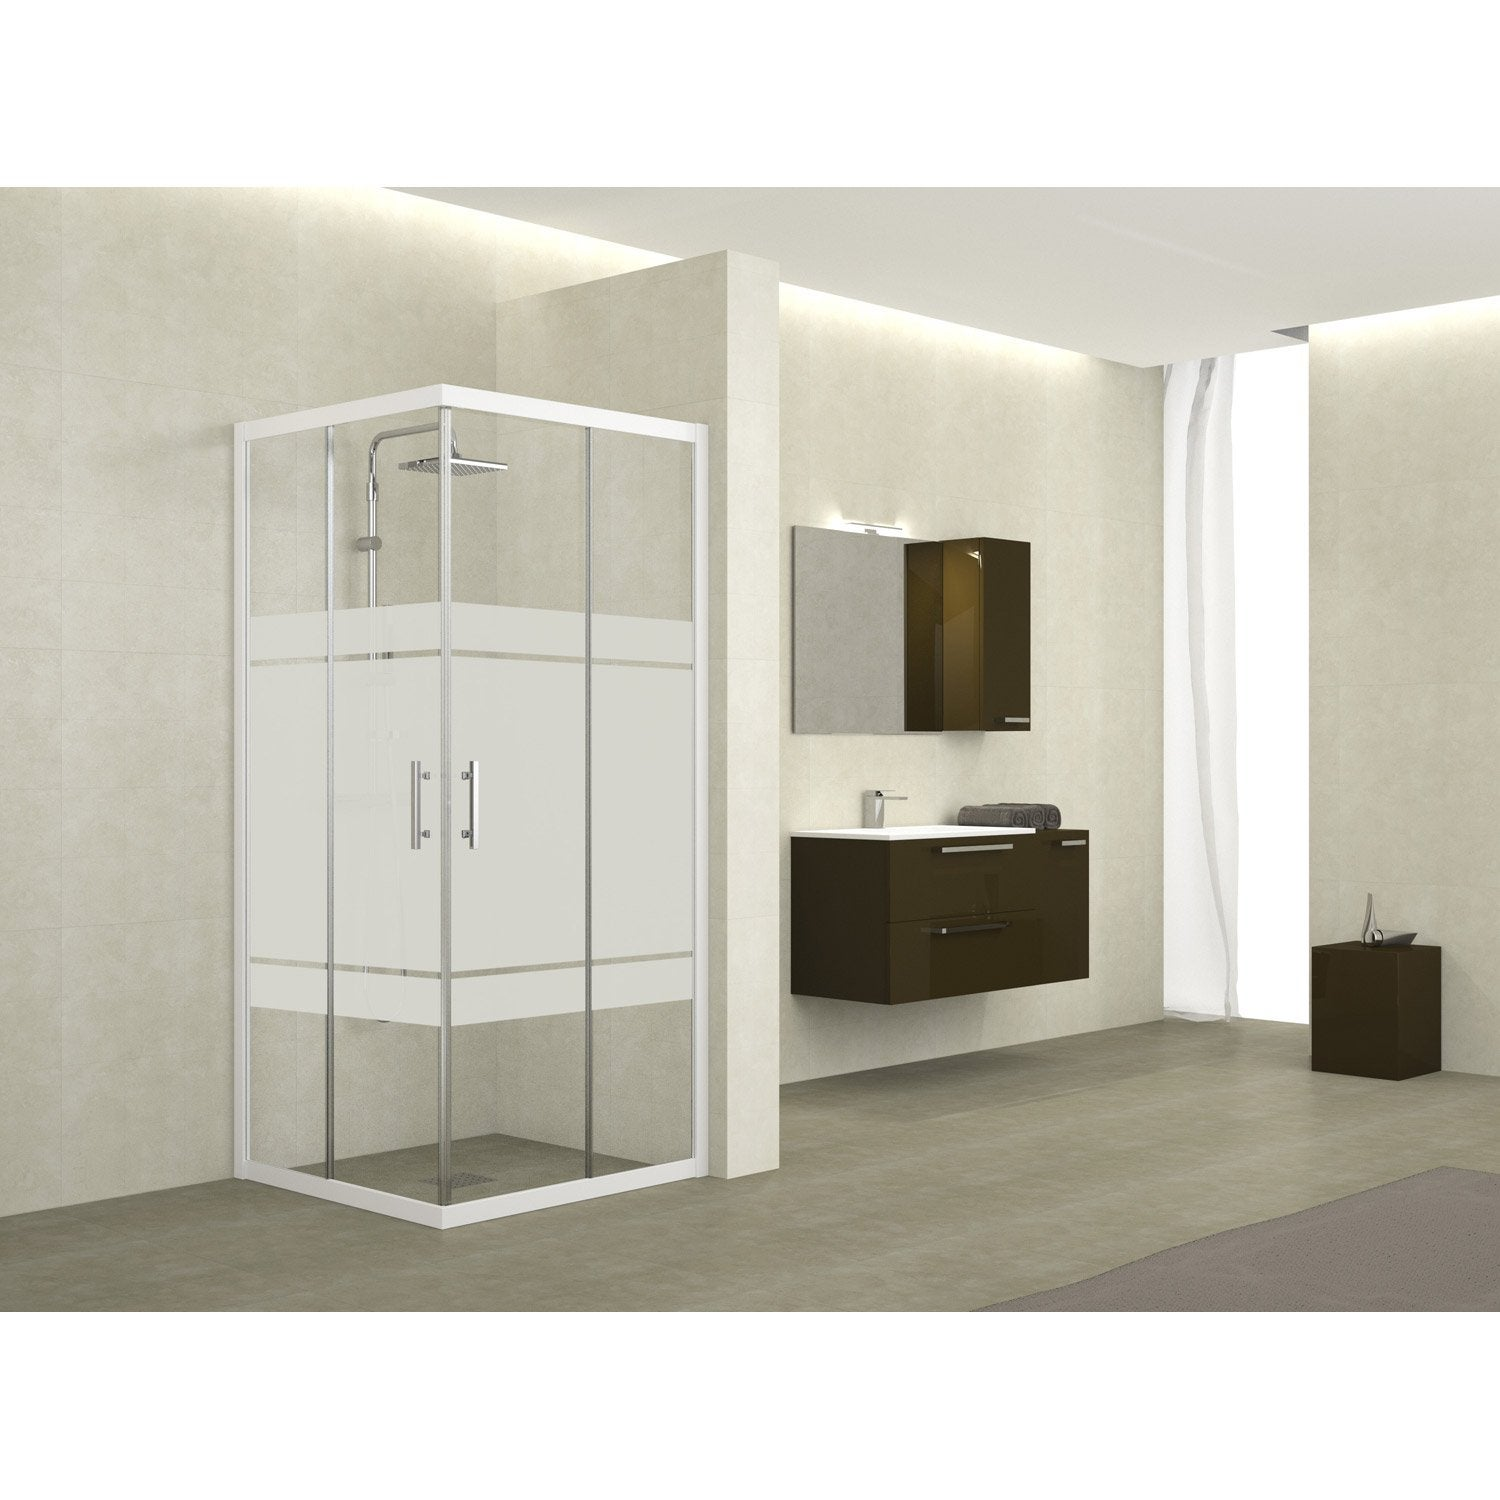 Porte de douche angle carre coulissante for Porte de douche leroy merlin